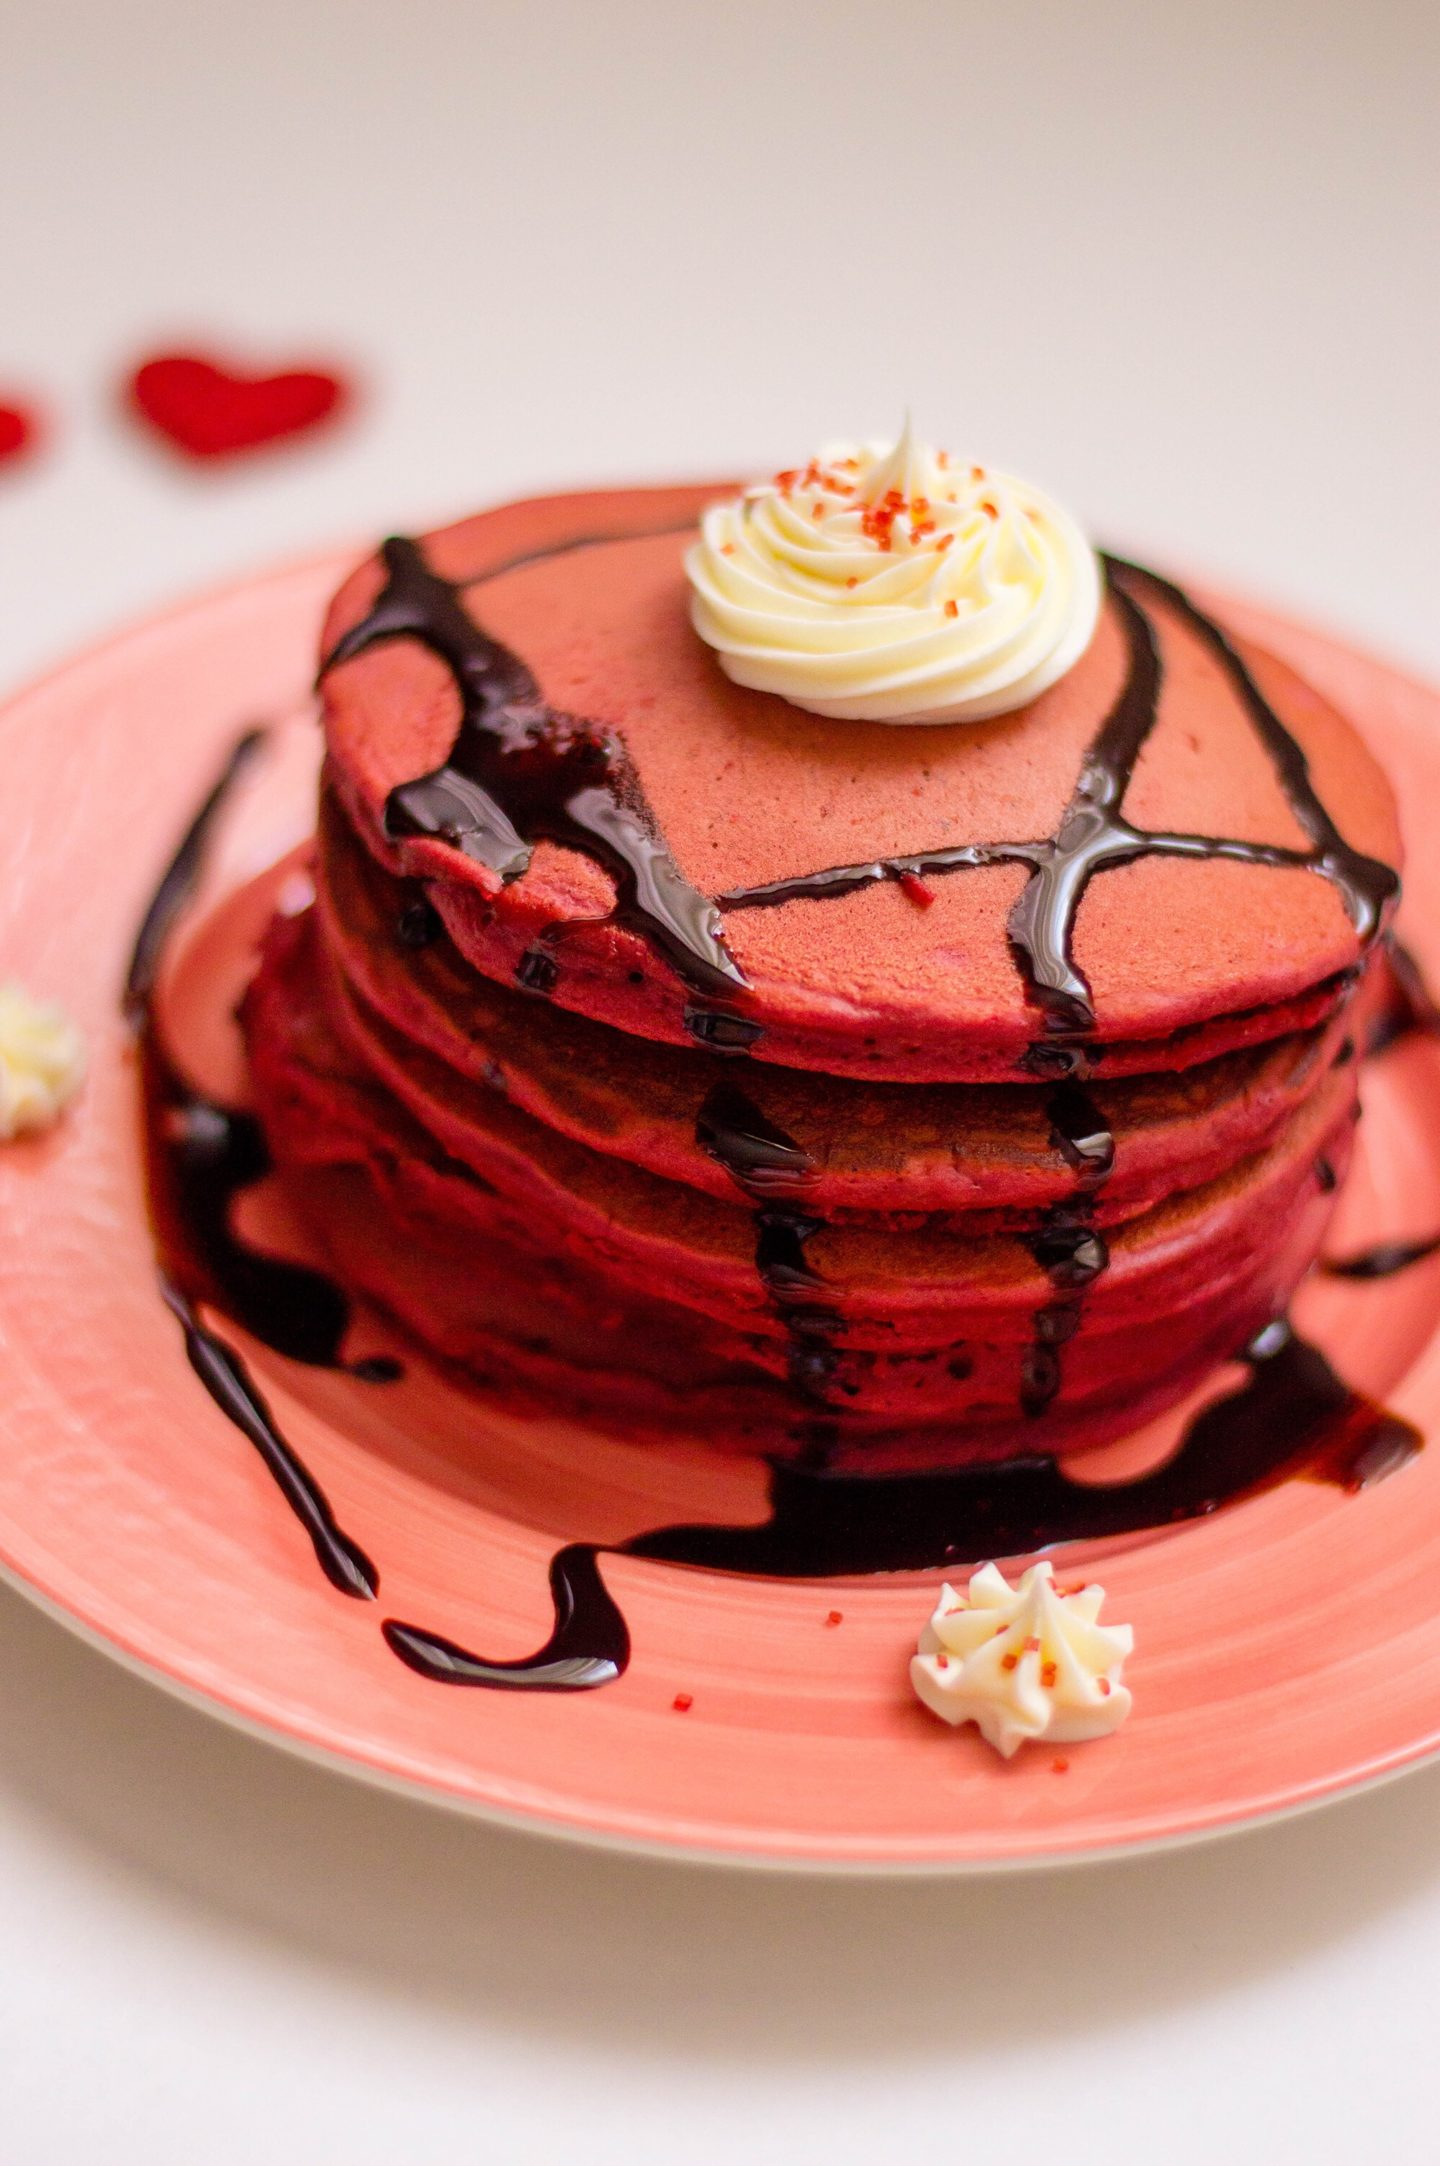 A Valentine's Breakfast You'll Love: Red Velvet Pancake Recipe